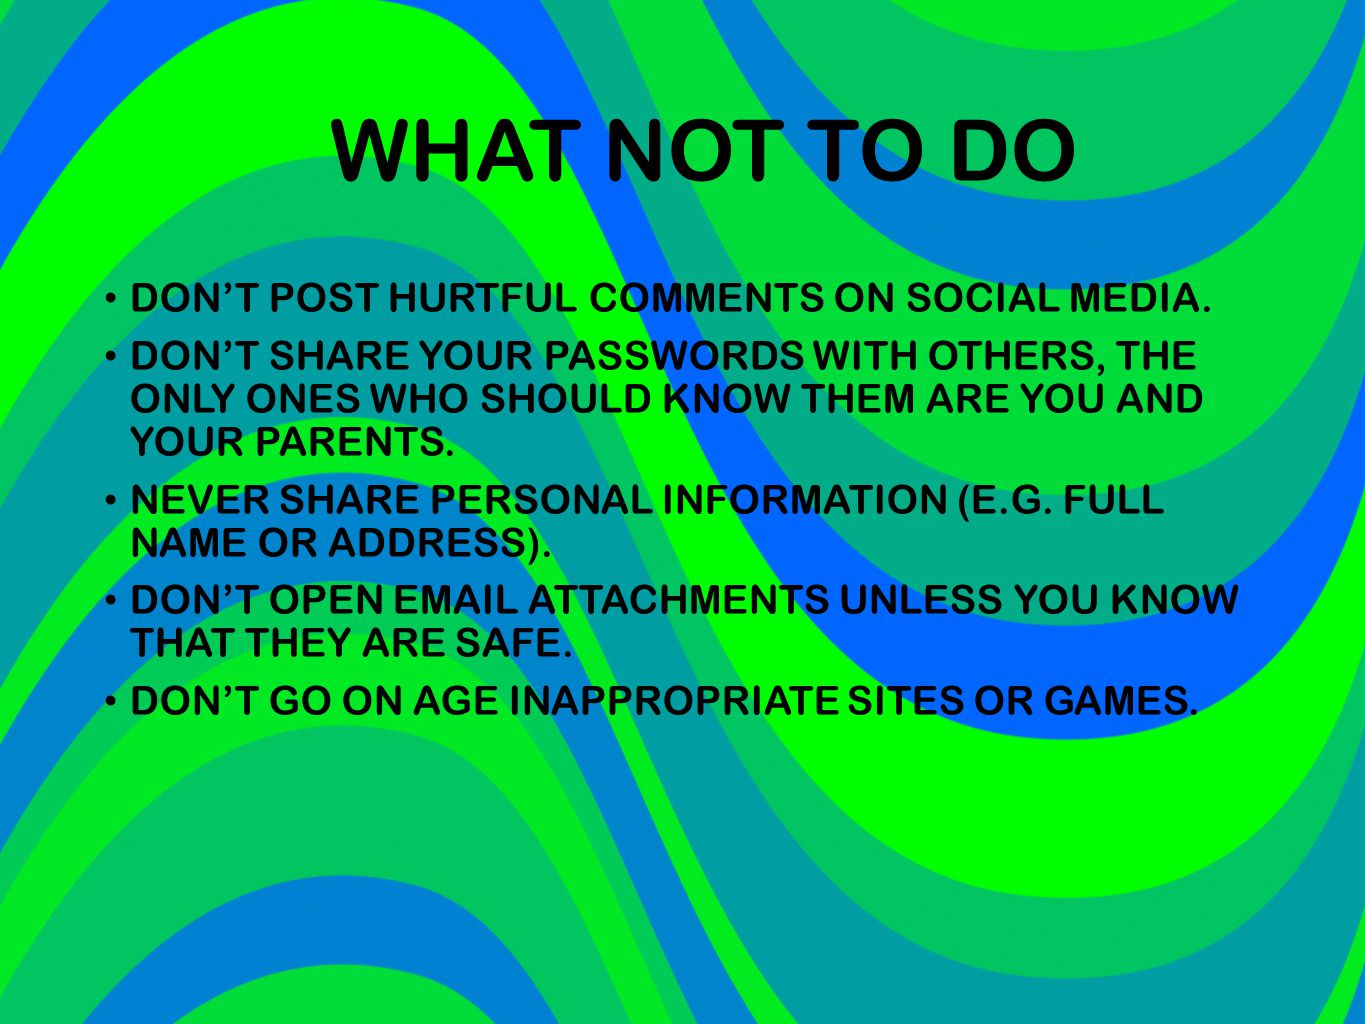 WHAT NOT TO DO DON'T POST HURTFUL COMMENTS ON SOCIAL MEDIA.